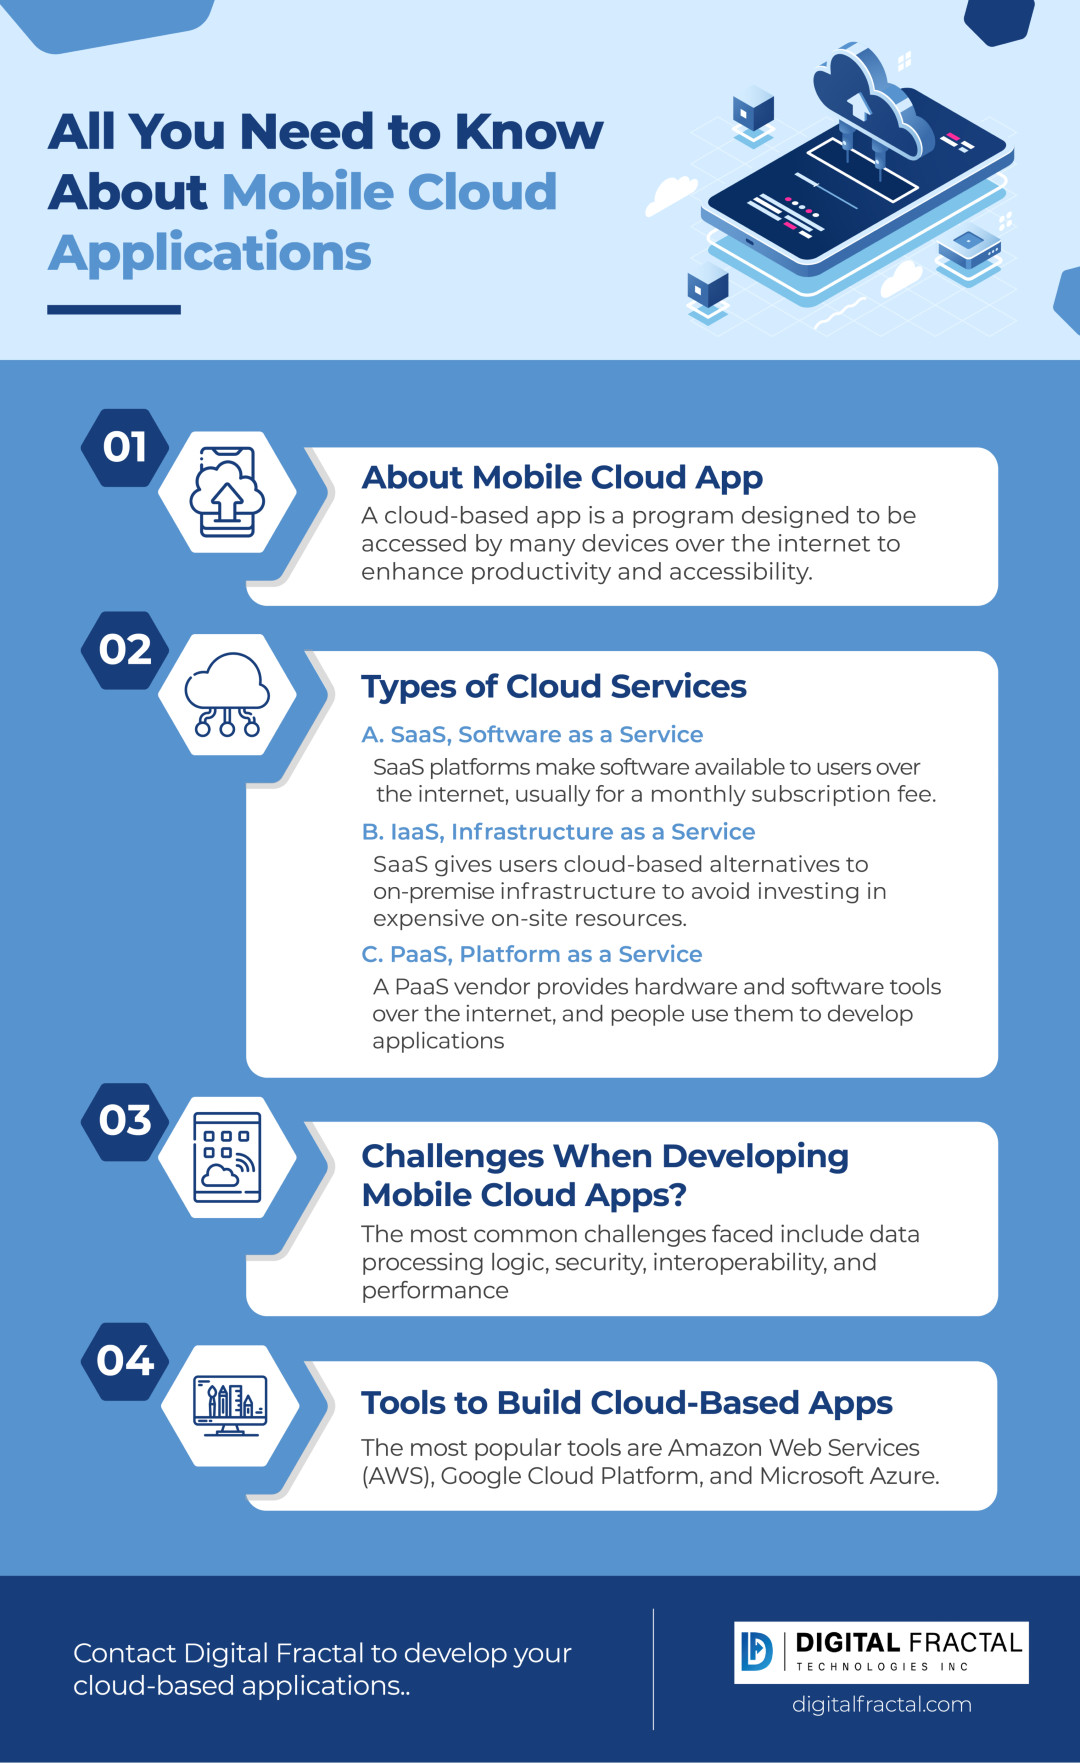 Need to Know About Mobile Cloud Applications